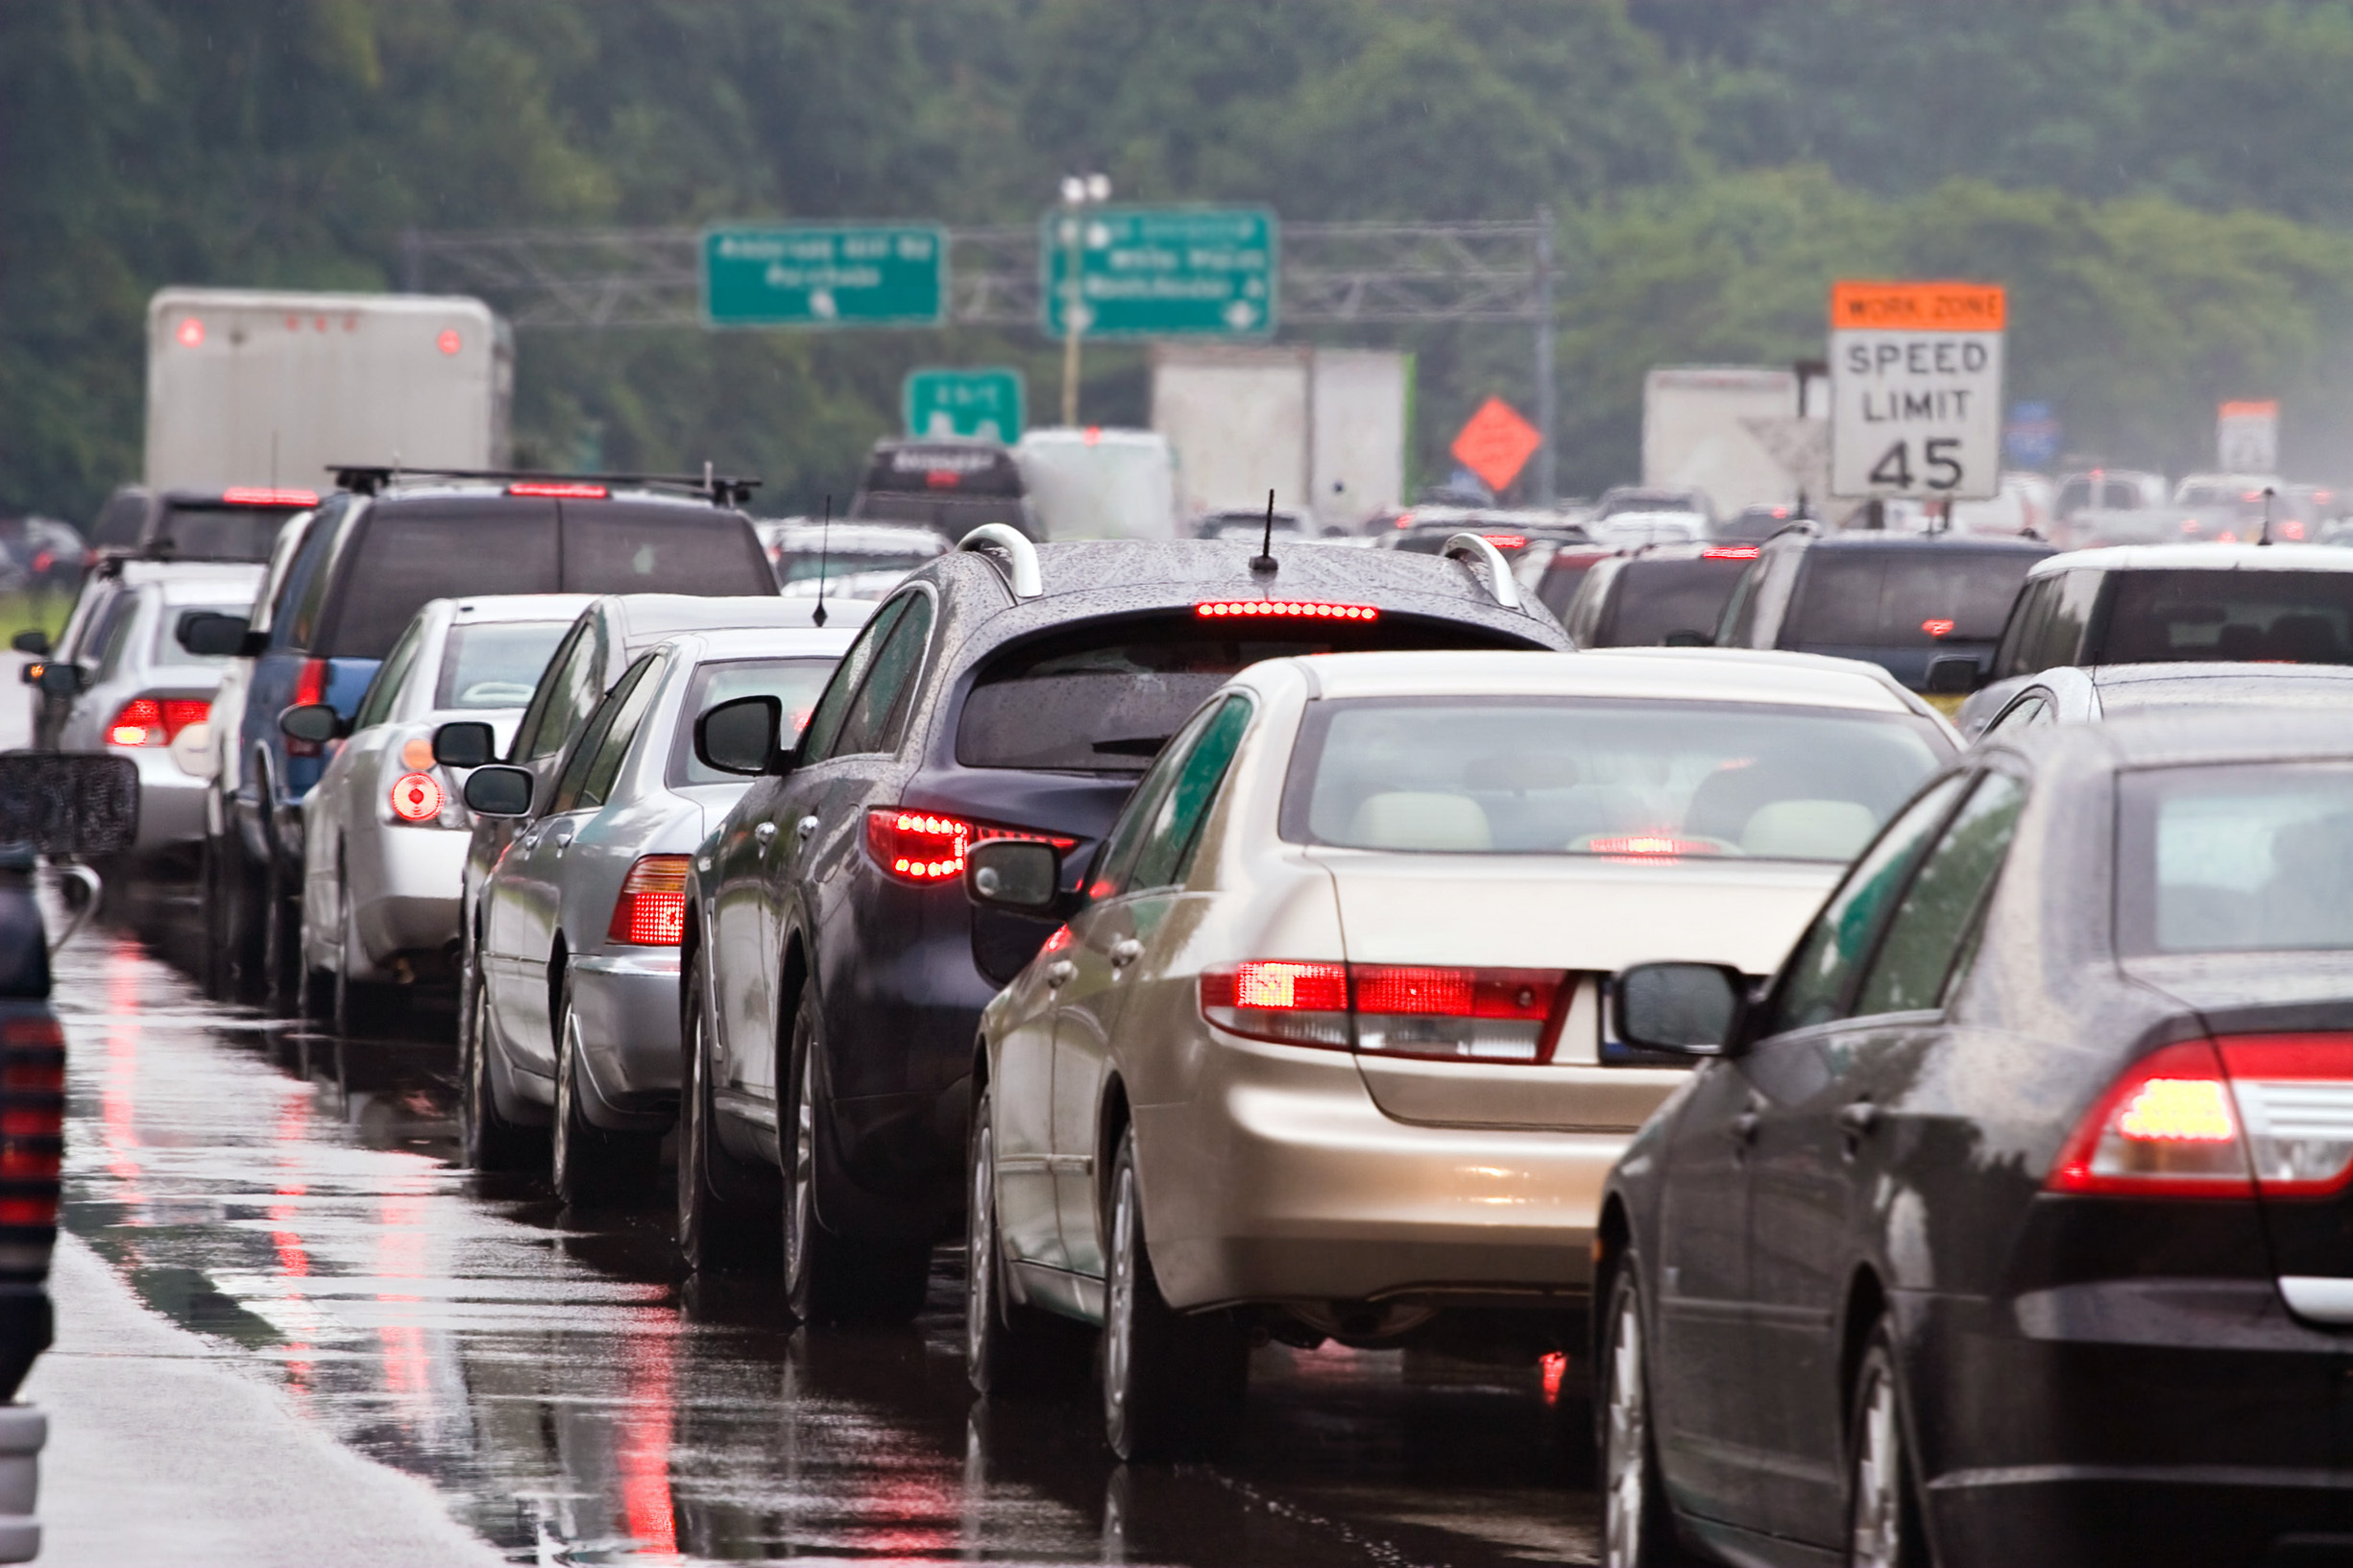 Traffic jams could be solved with a simple change in how drivers and car sensors perceive the other cars around them.